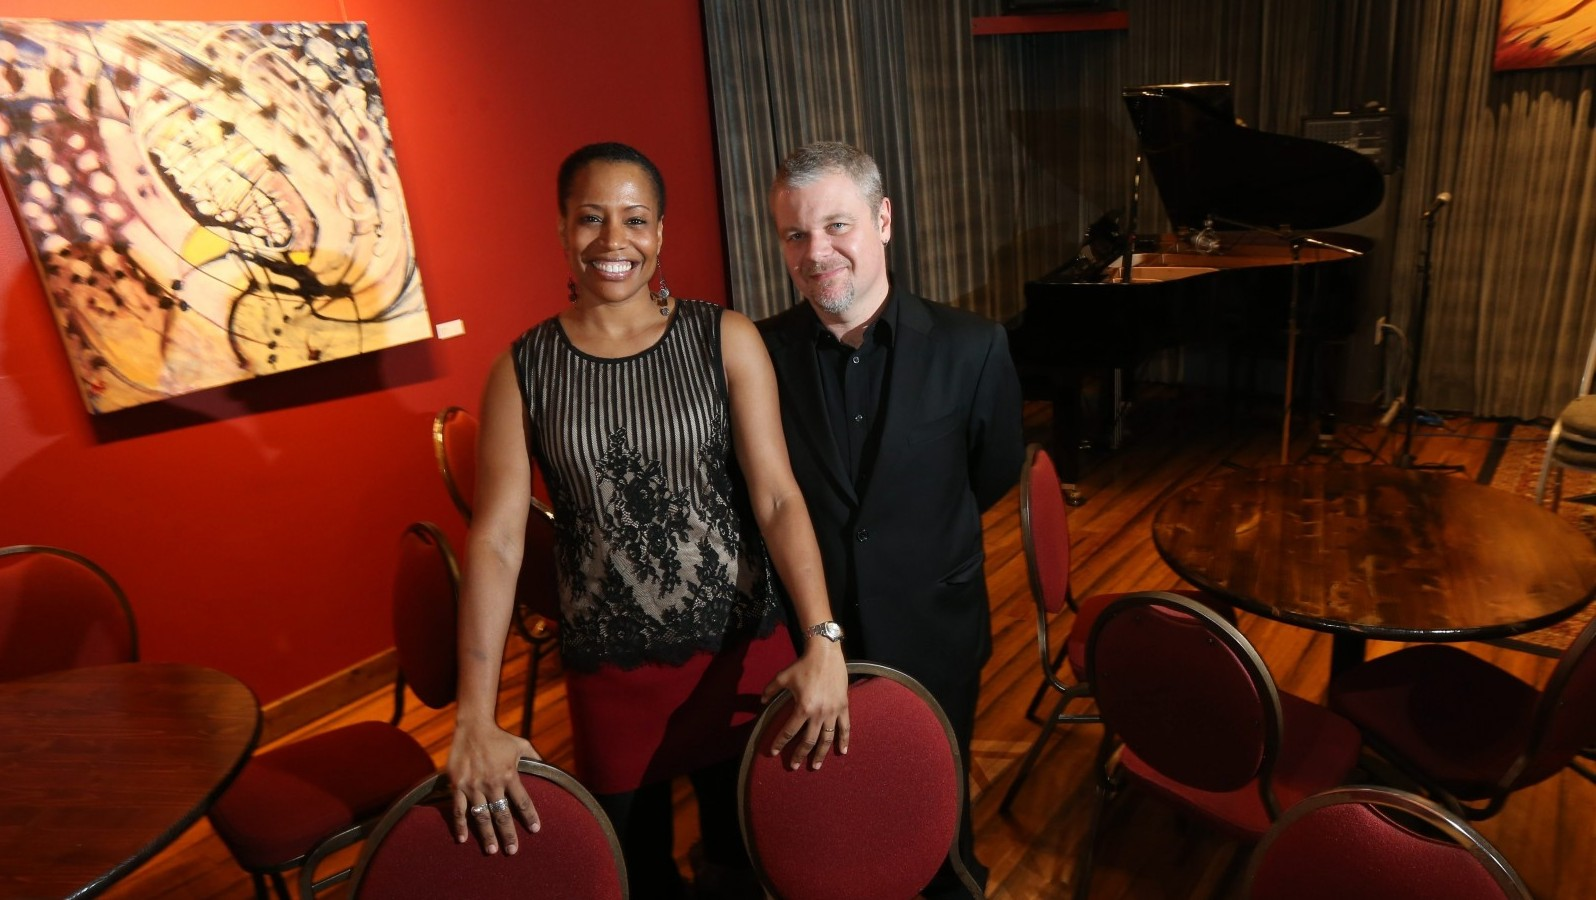 Lazara and Jon Nelson opened Pausa Art house three years ago in a renovated home on Wadsworth Street in Allentown. (Sharon Cantillon/Buffalo News)